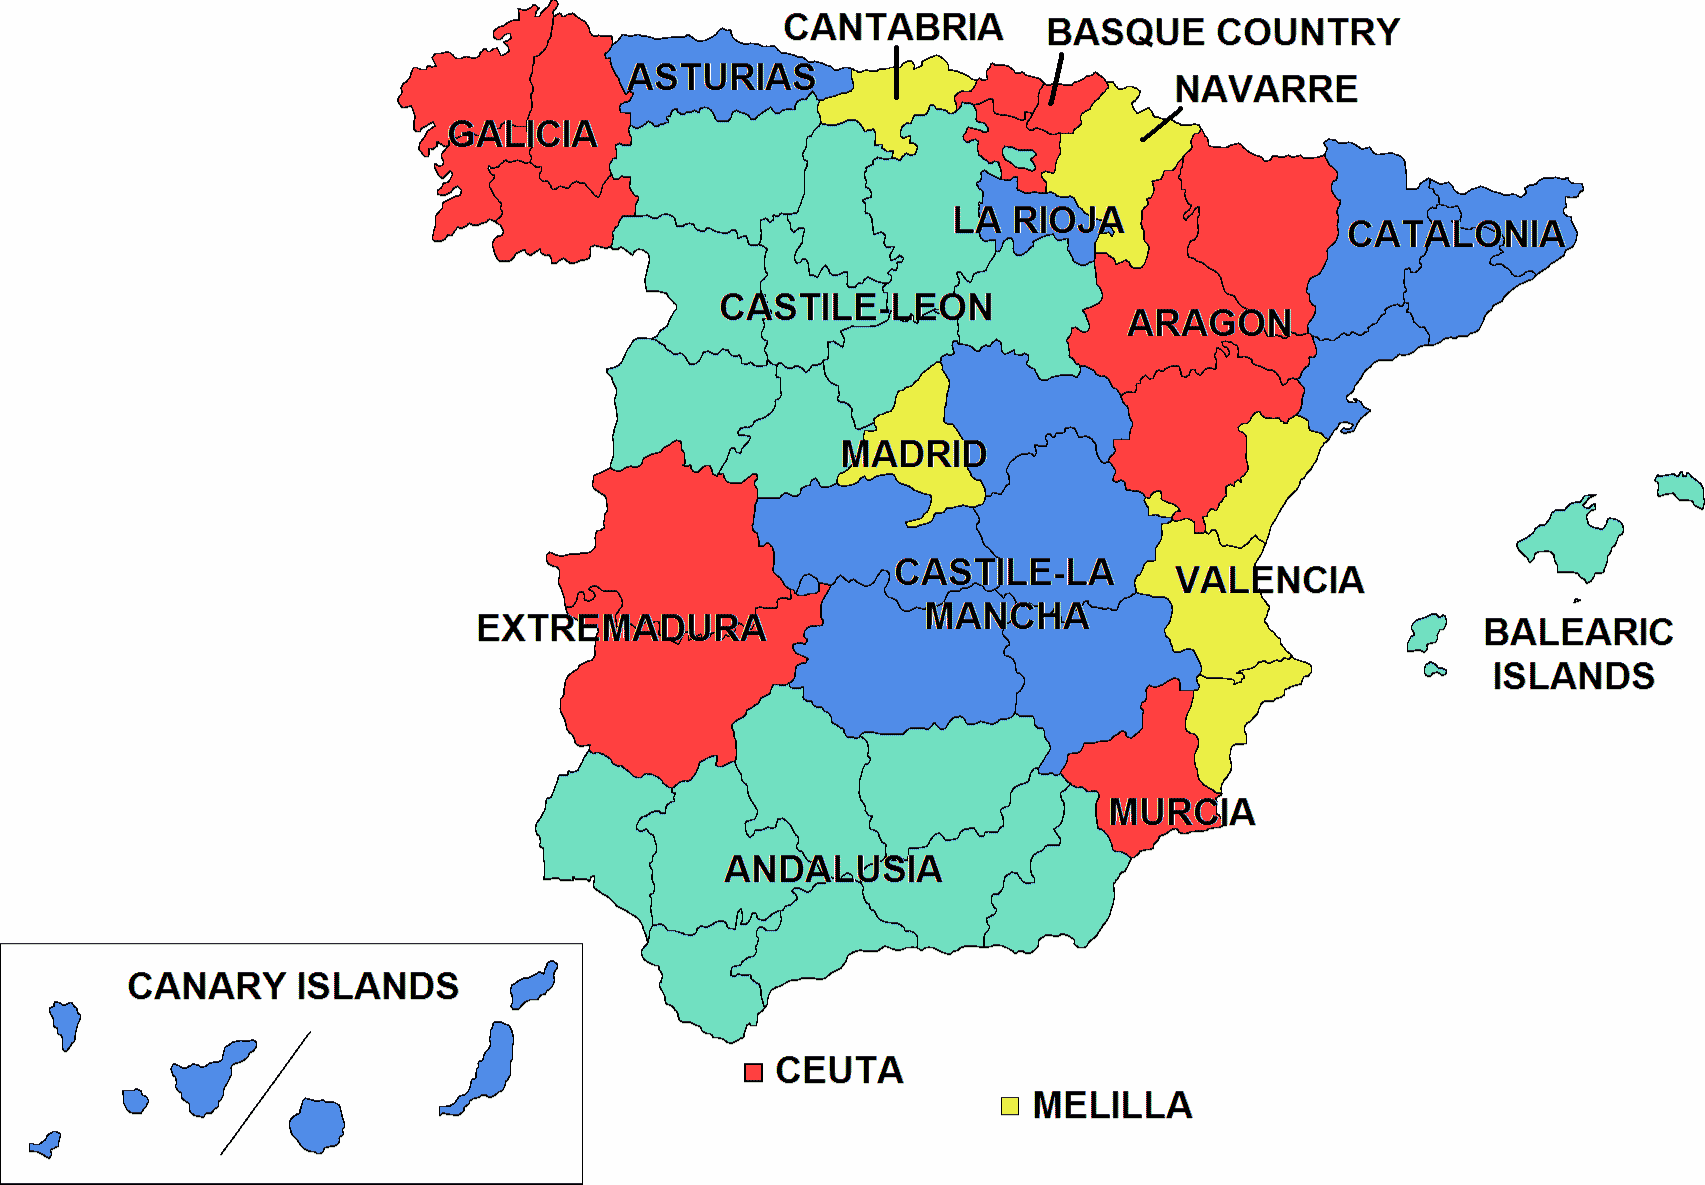 A regional map of Spain color coordinated to show different regions.